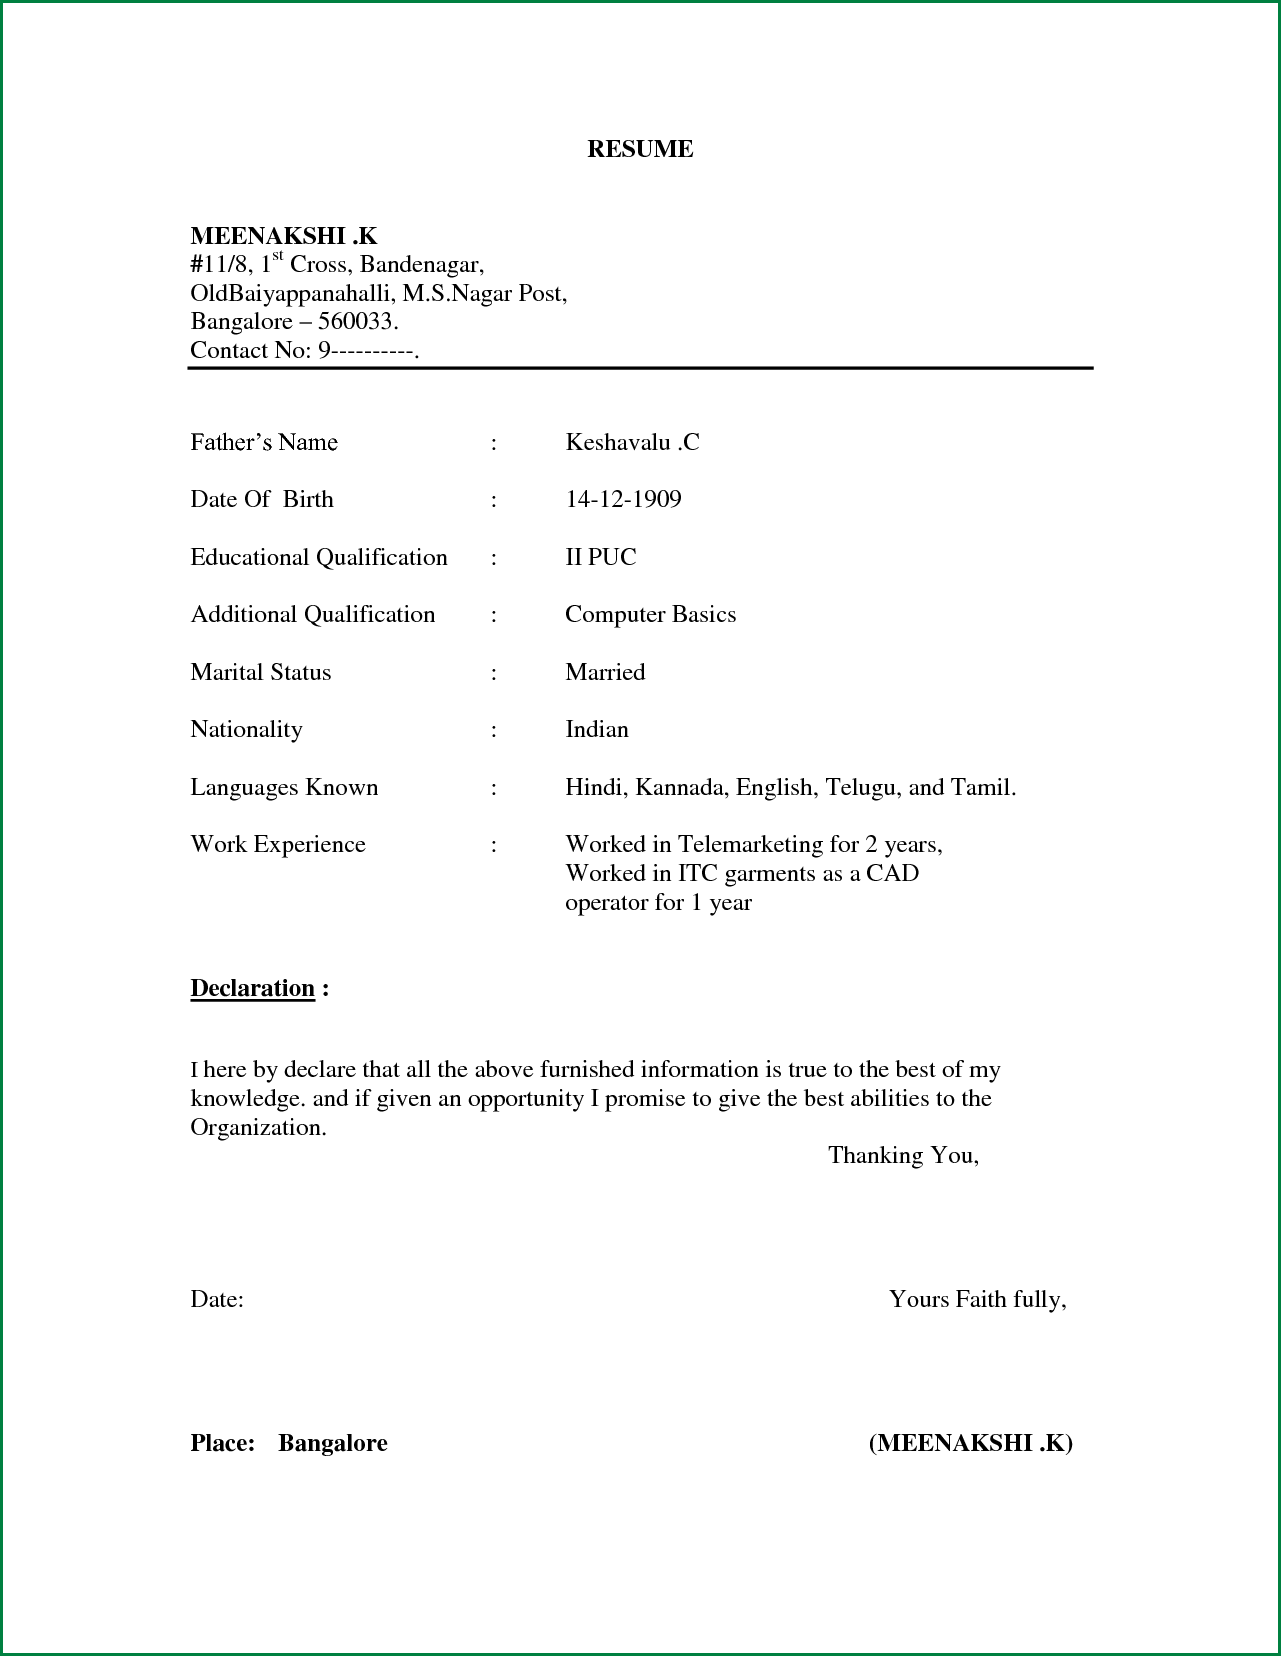 Simple Resume Format For Freshers In Word File.137085913.png  Free Basic Resume Templates Microsoft Word